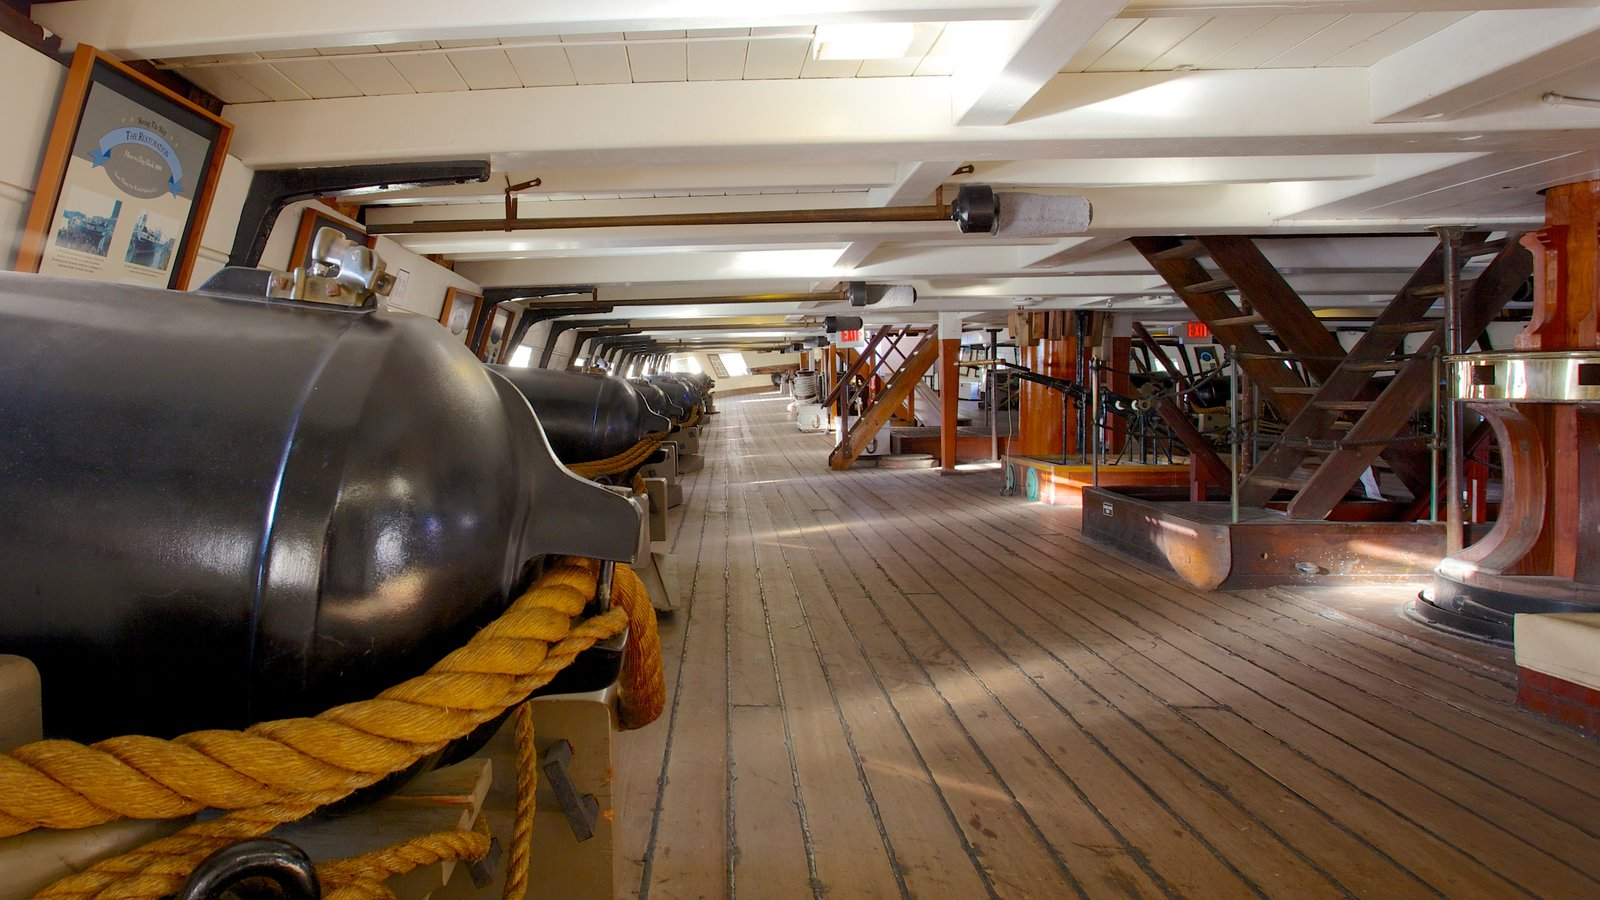 USS Constellation which includes military items and interior views